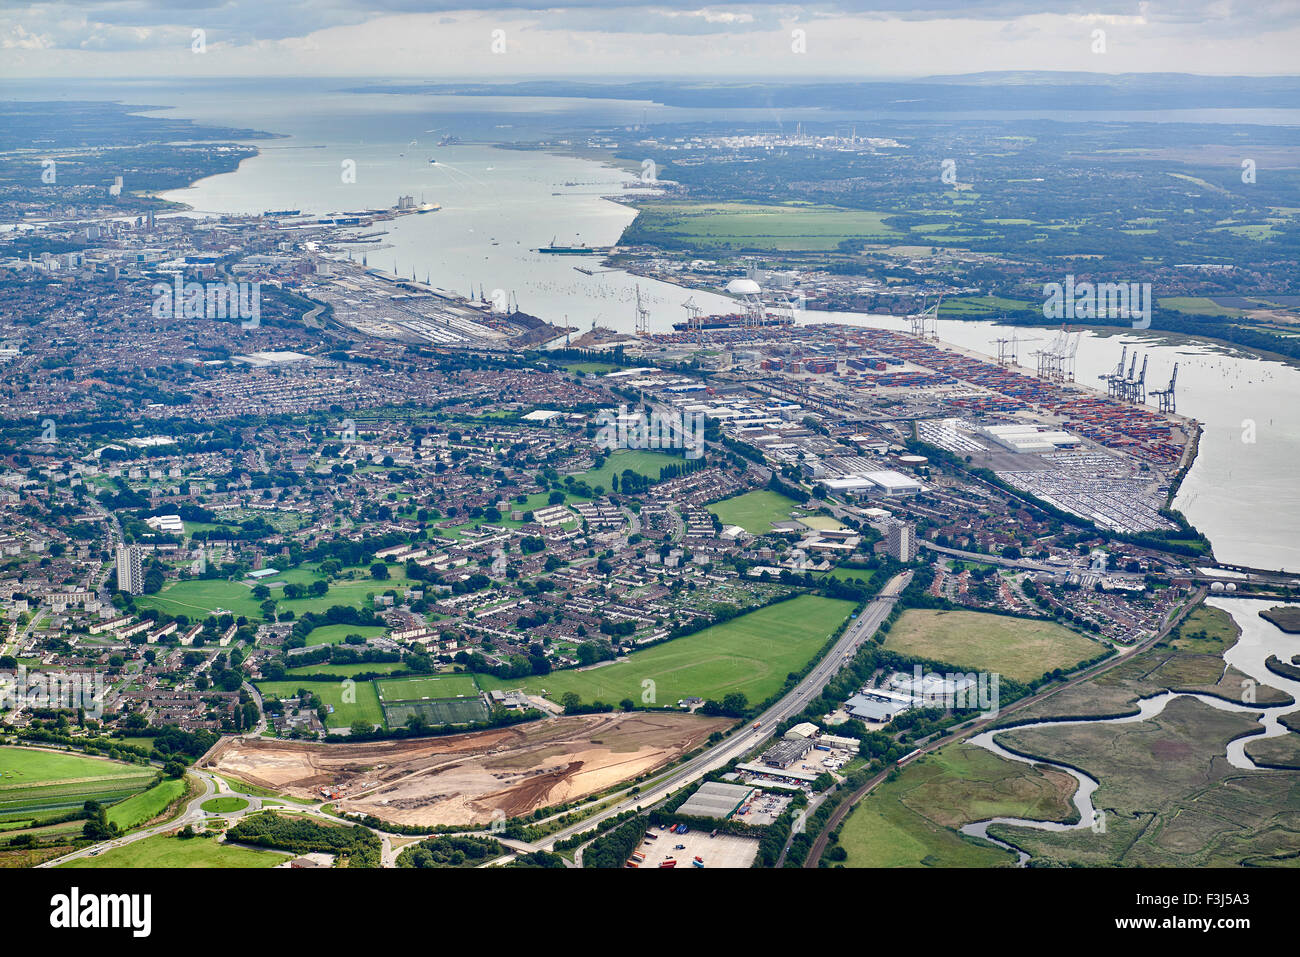 An aerial view of Southampton port and Southampton water, with the Isle of Wight behind, Southern England - Stock Image